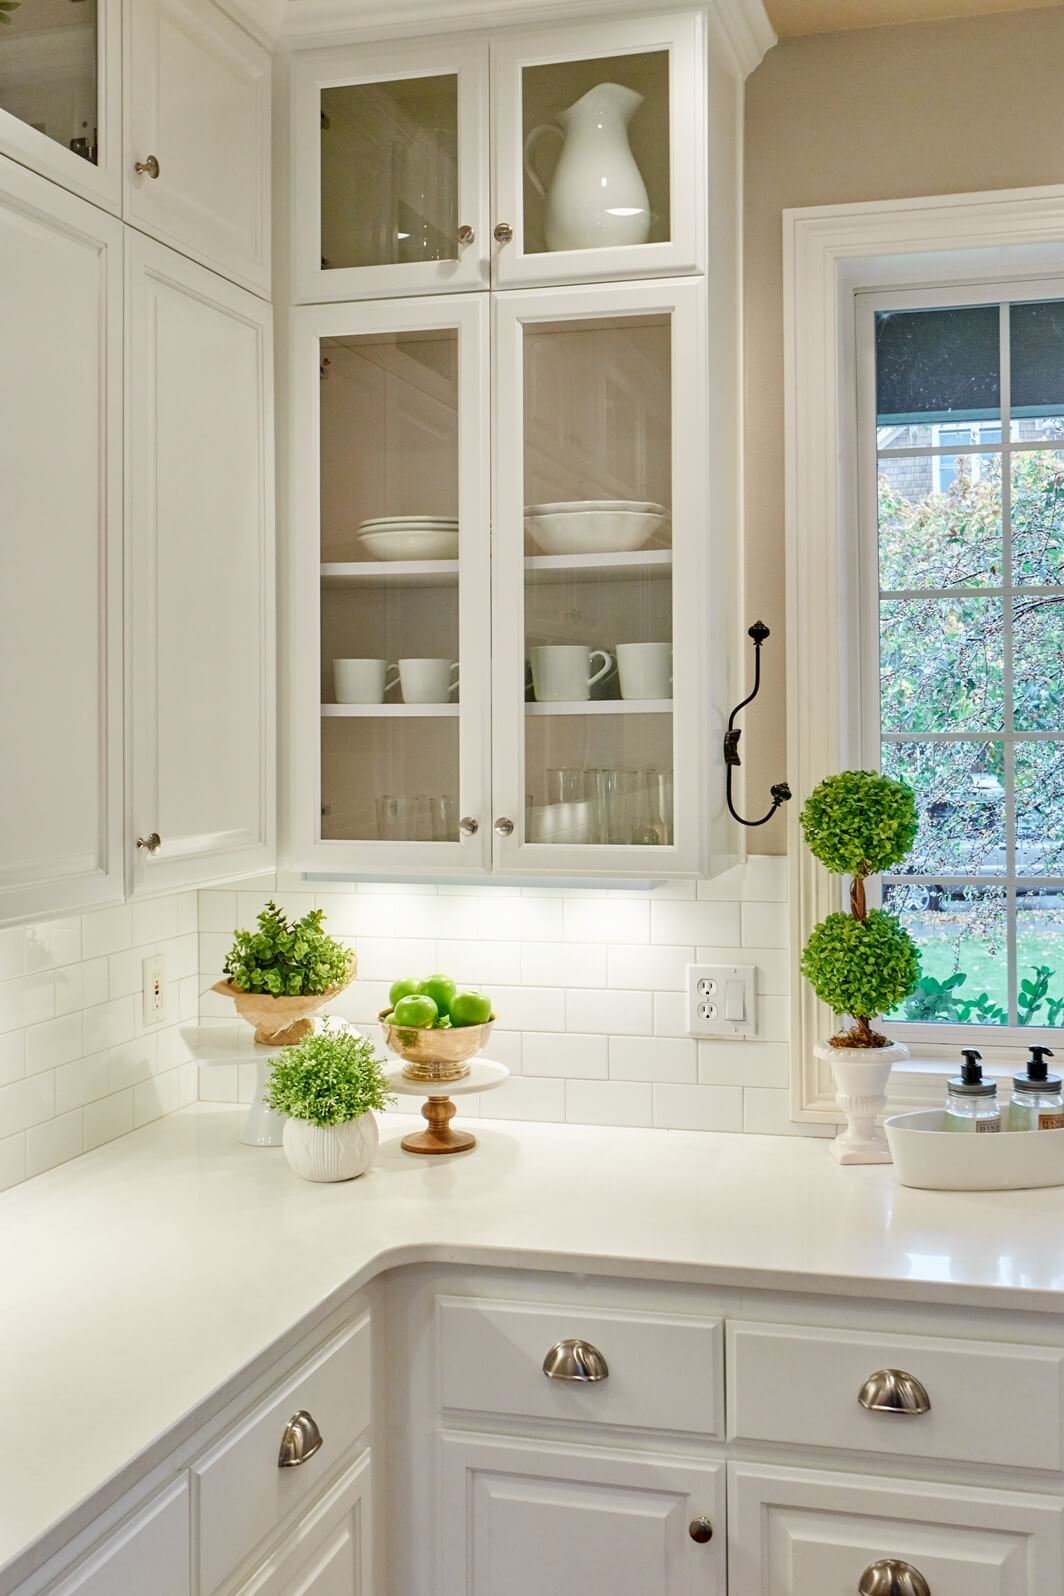 We completed the kitchen renovation by painting the existing cabinets white and adding second-tier upper cabinets.